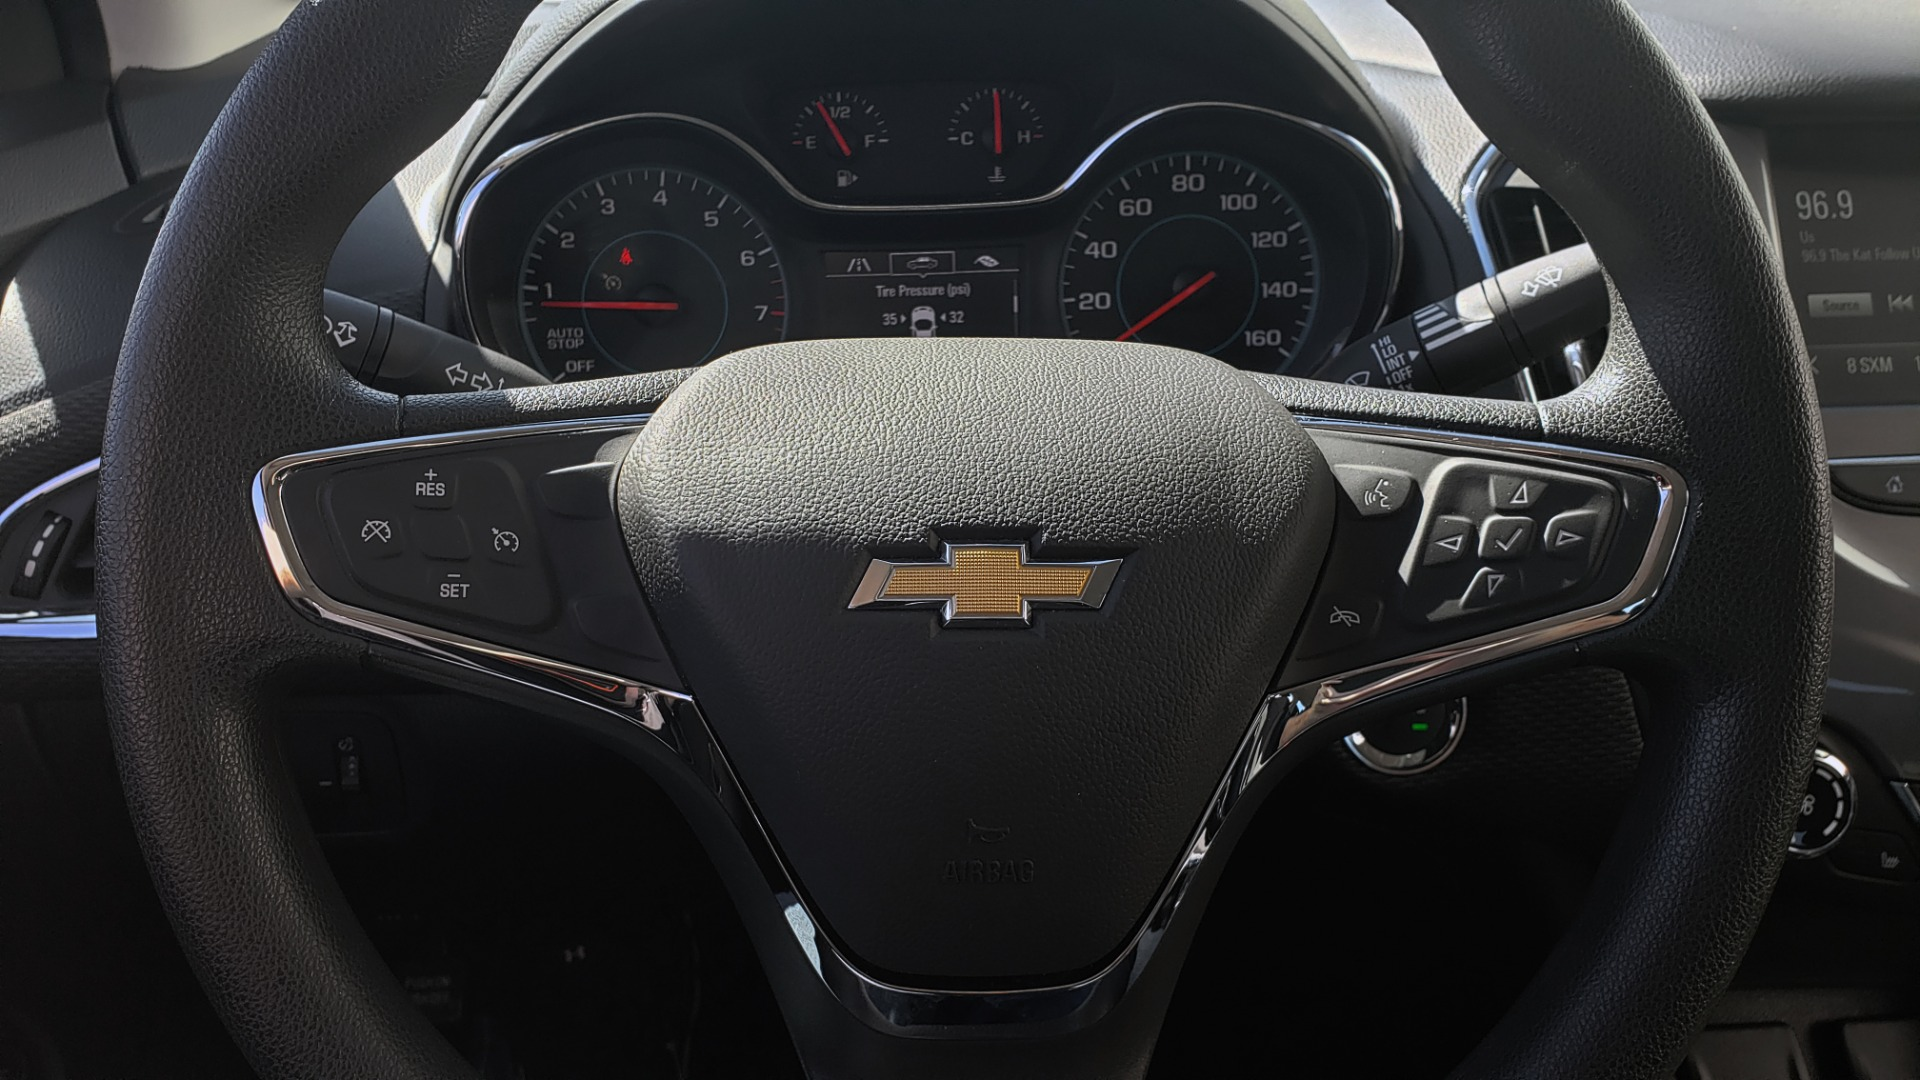 Used 2017 Chevrolet CRUZE LT 1.4L 1SD / 6-SPD AUTO / HTS STS / REMOTE START / REARVIEW for sale $11,495 at Formula Imports in Charlotte NC 28227 30